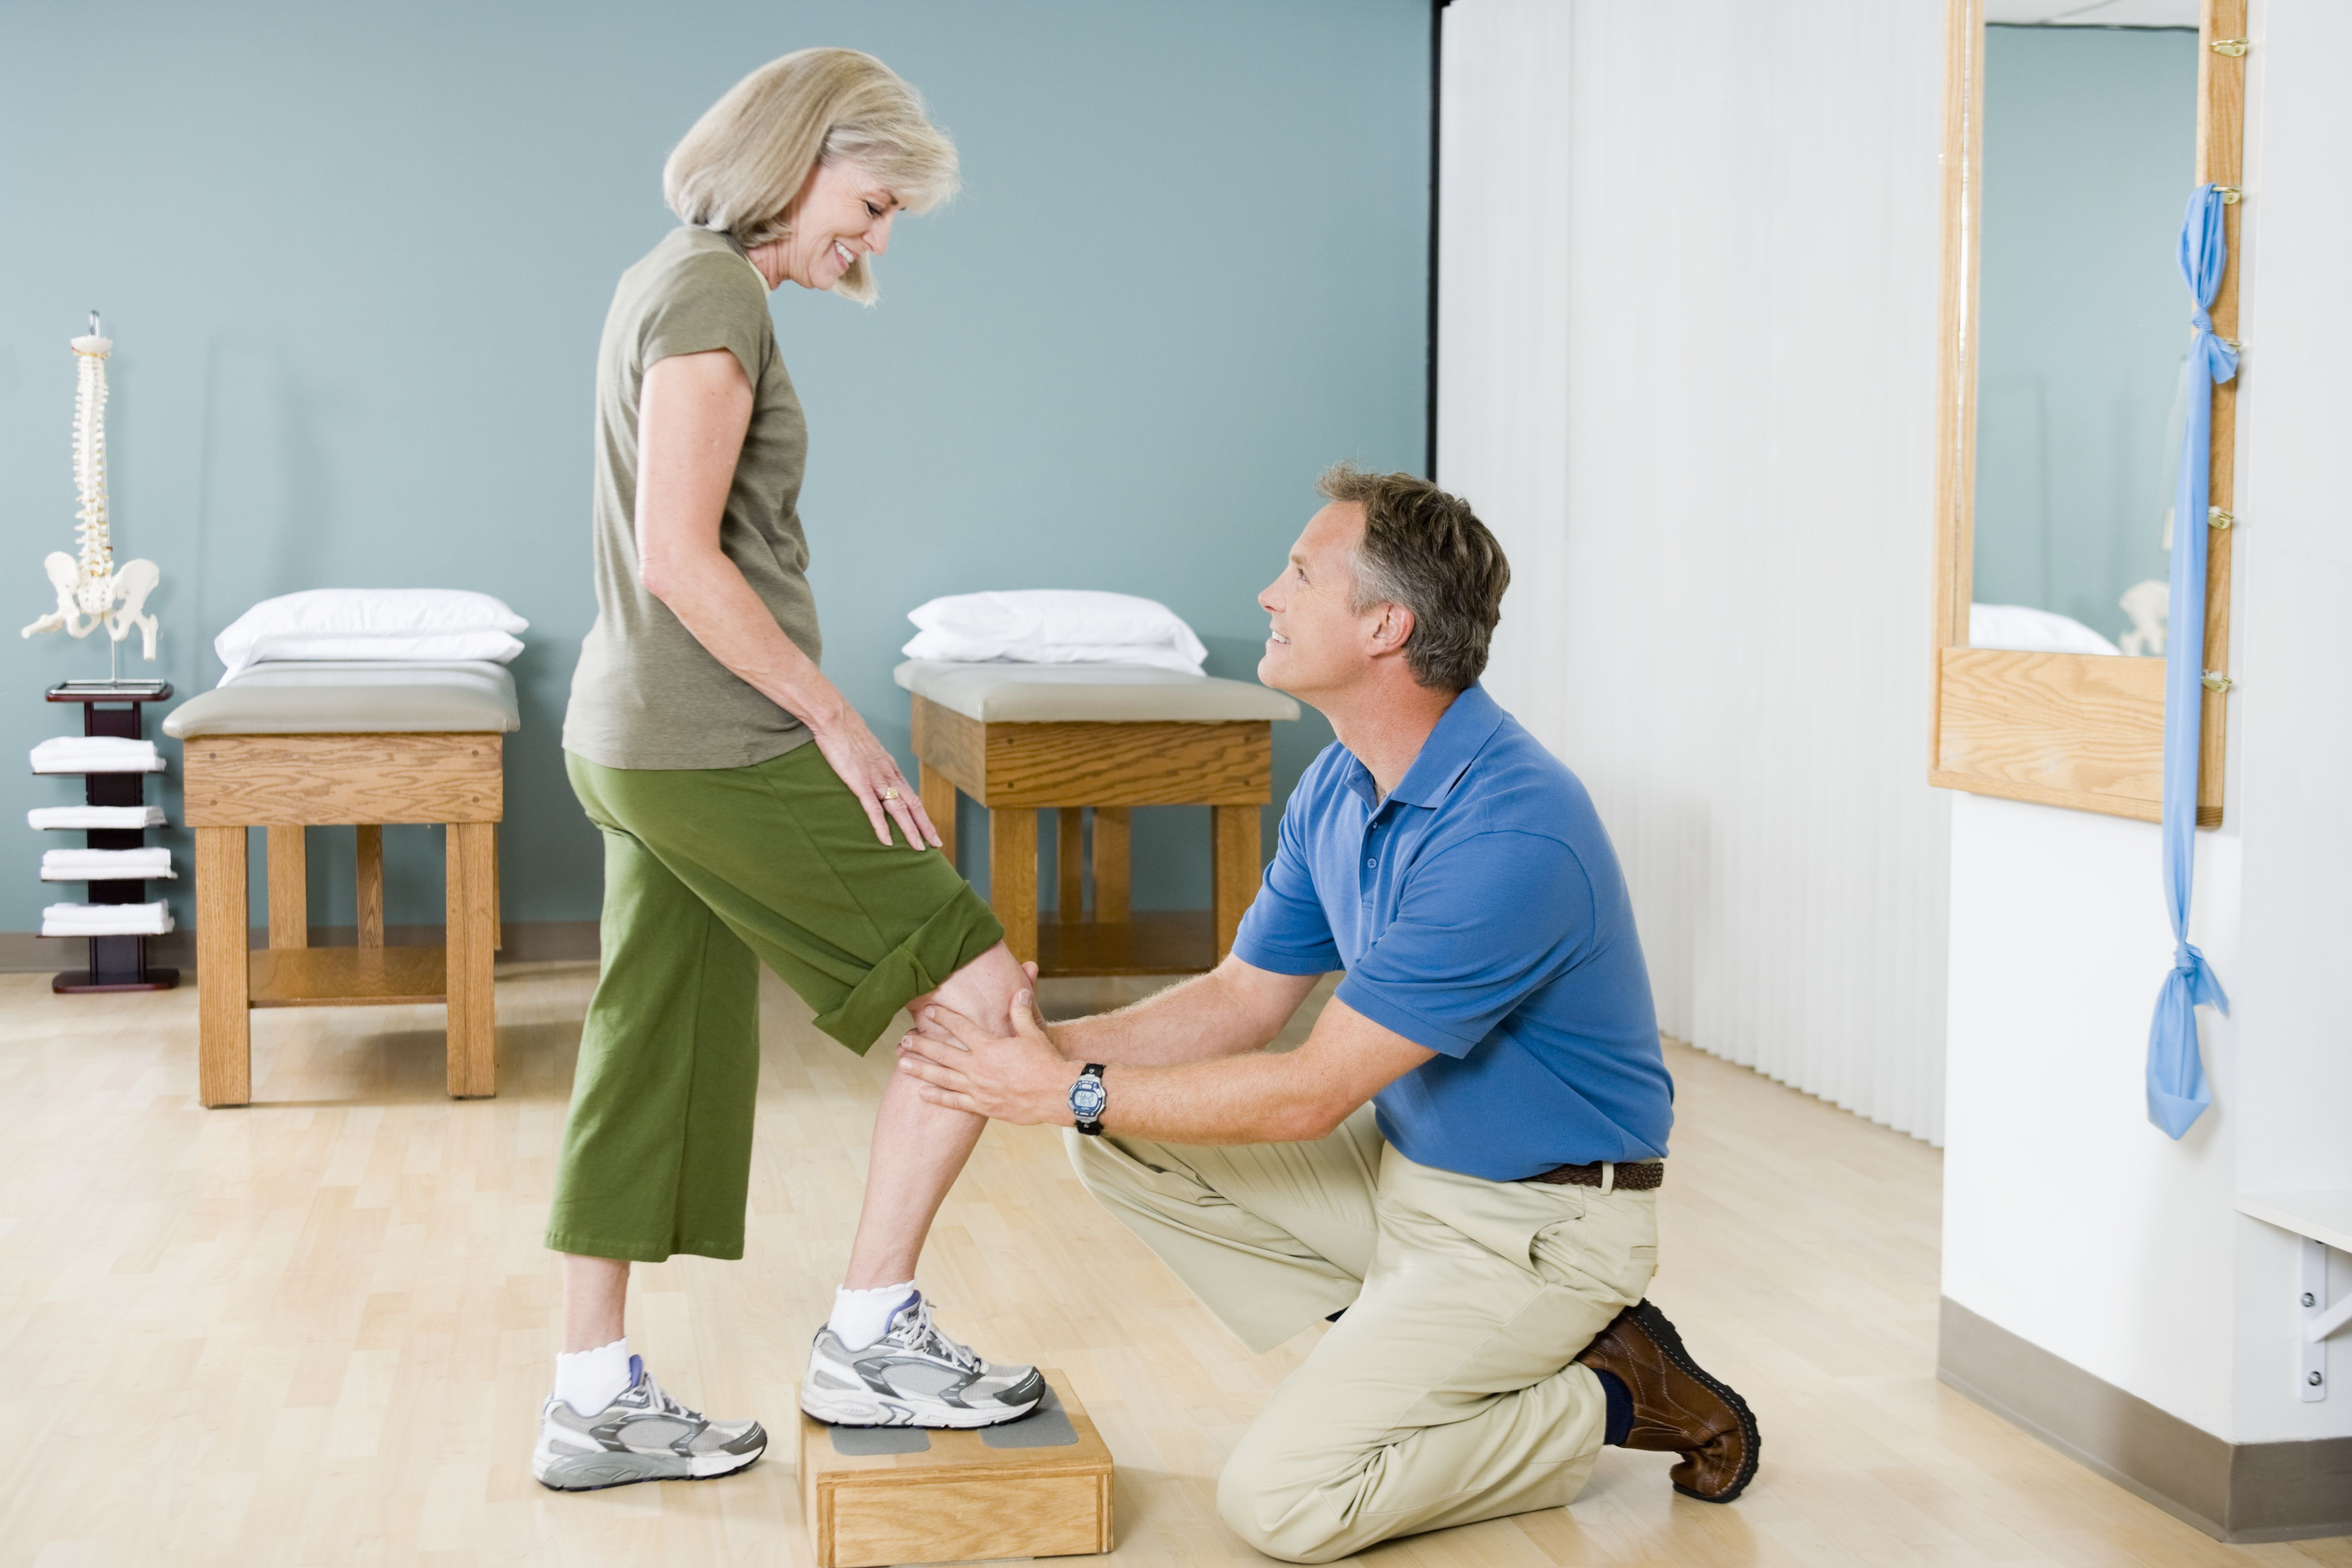 Treating A Meniscus Tear With Physical Therapy